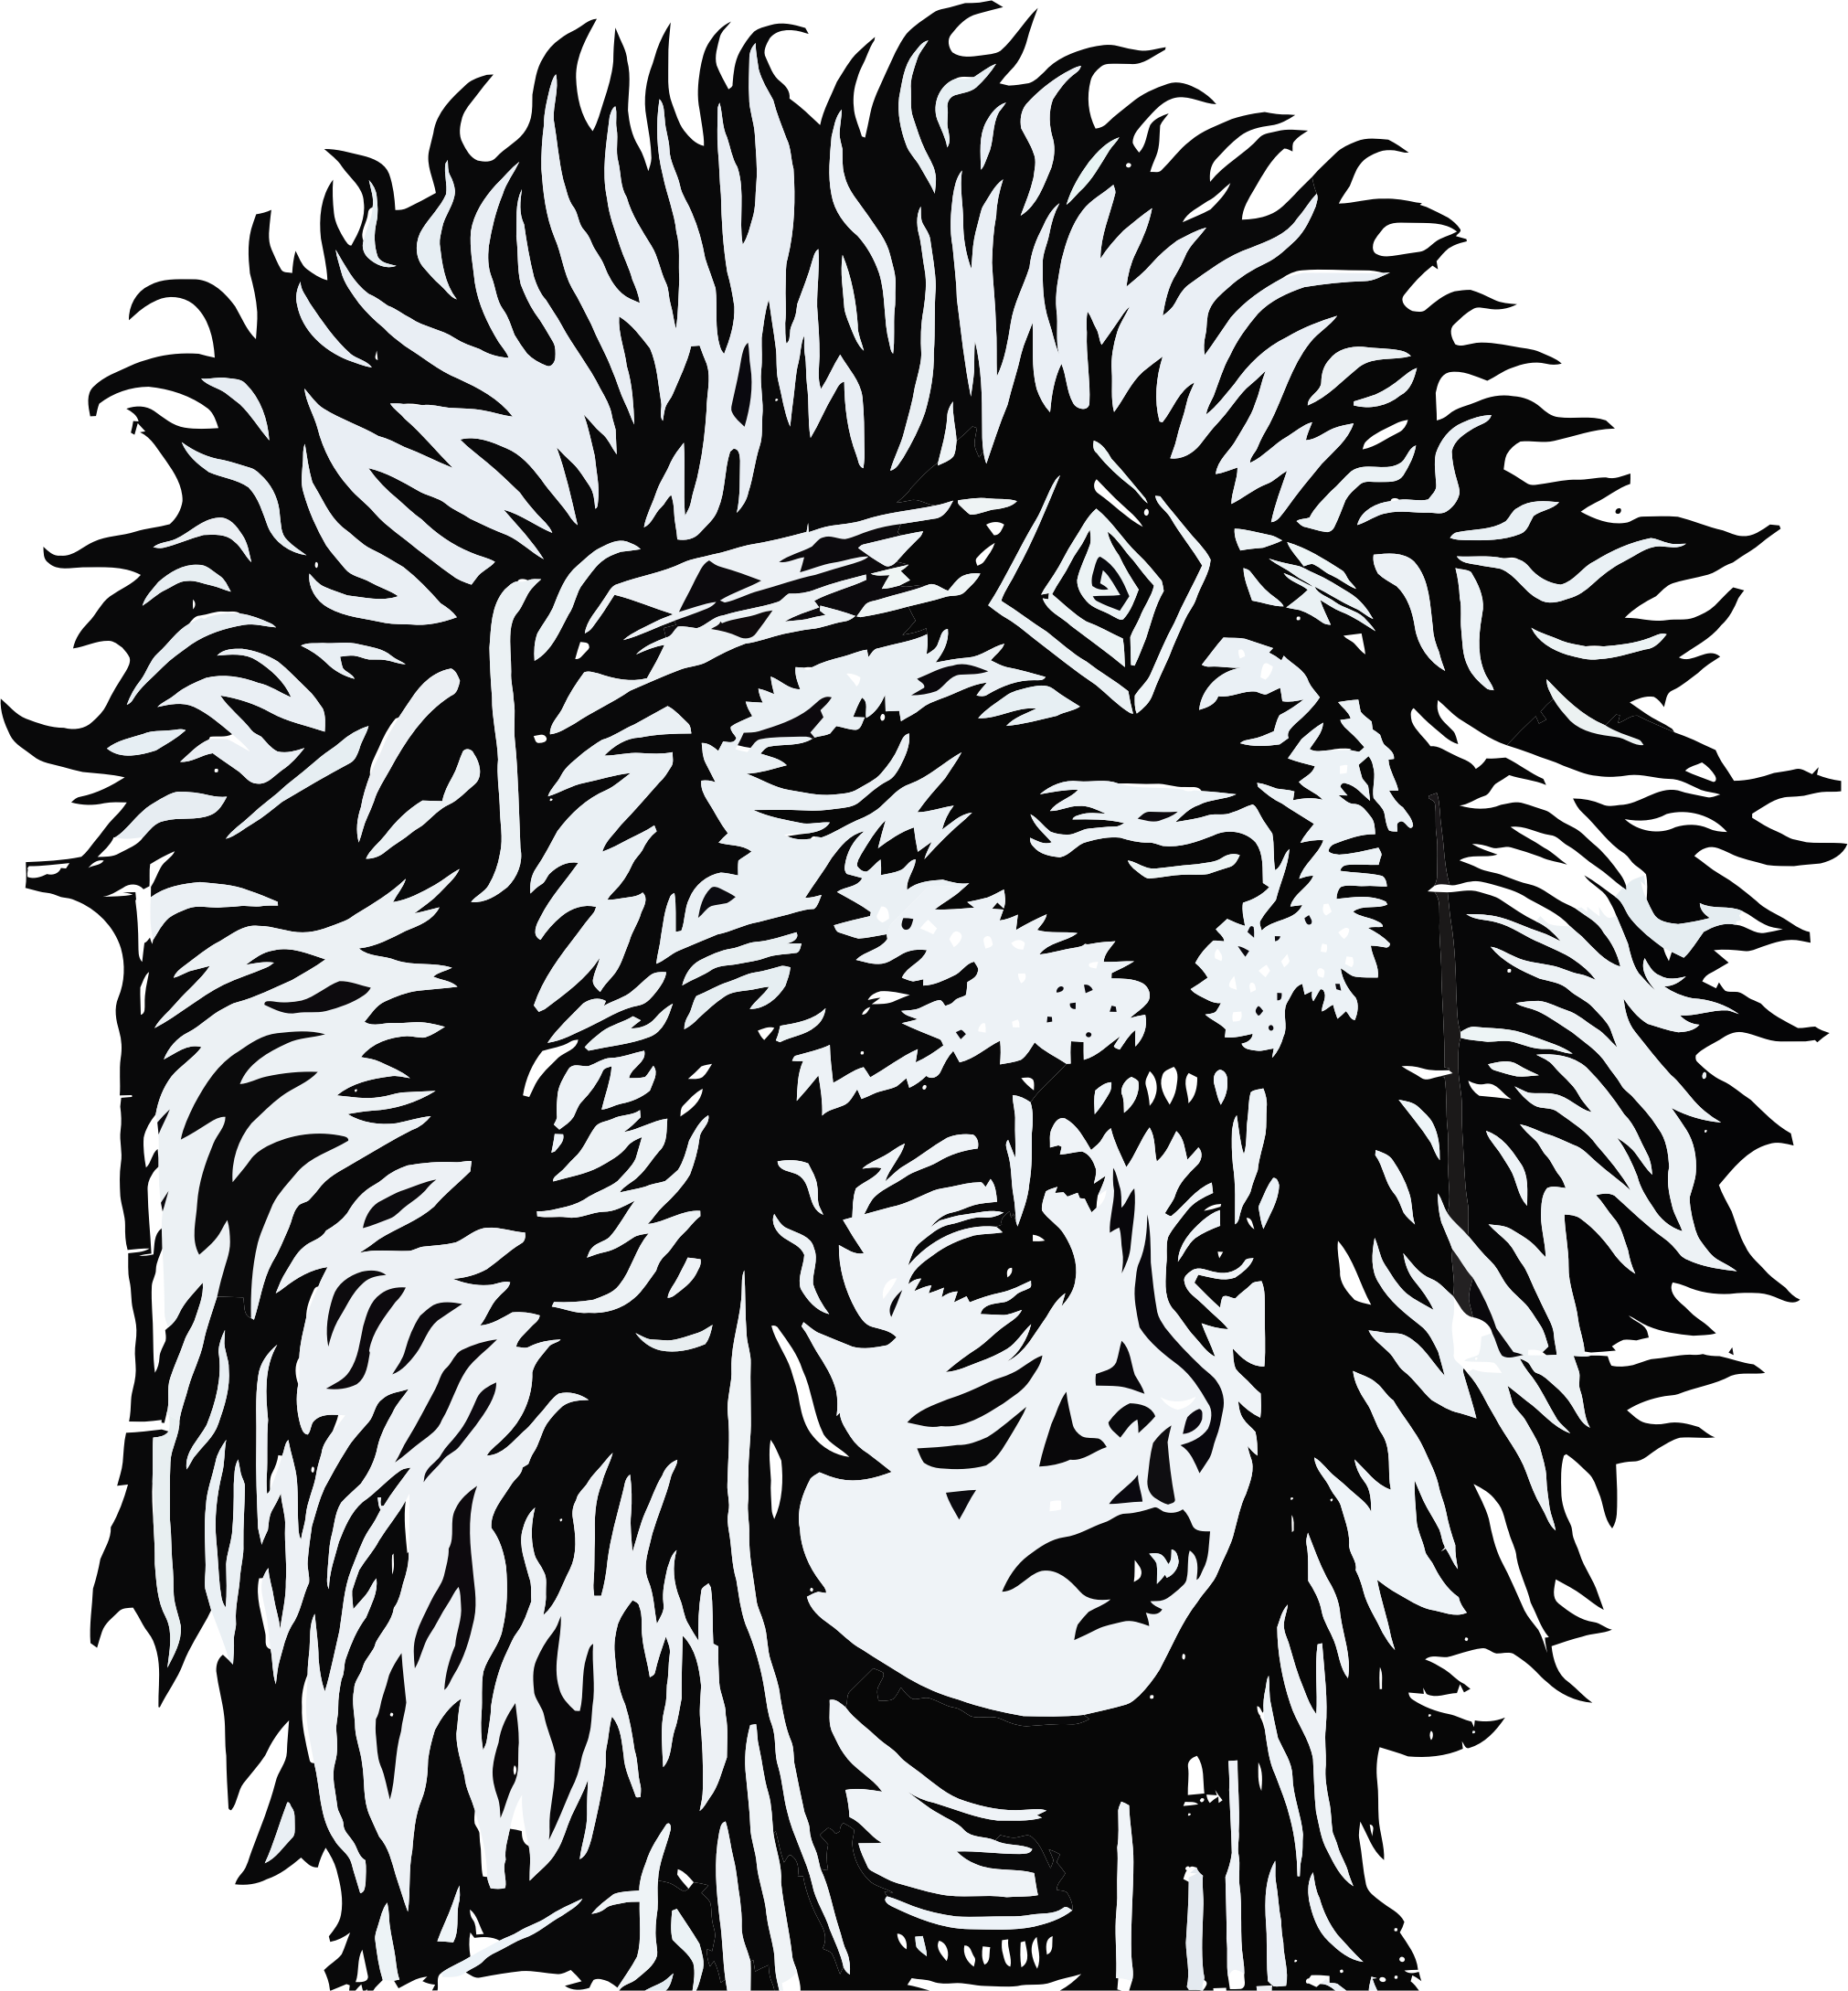 Tribal Head Dress Shaman Line Art by GDJ